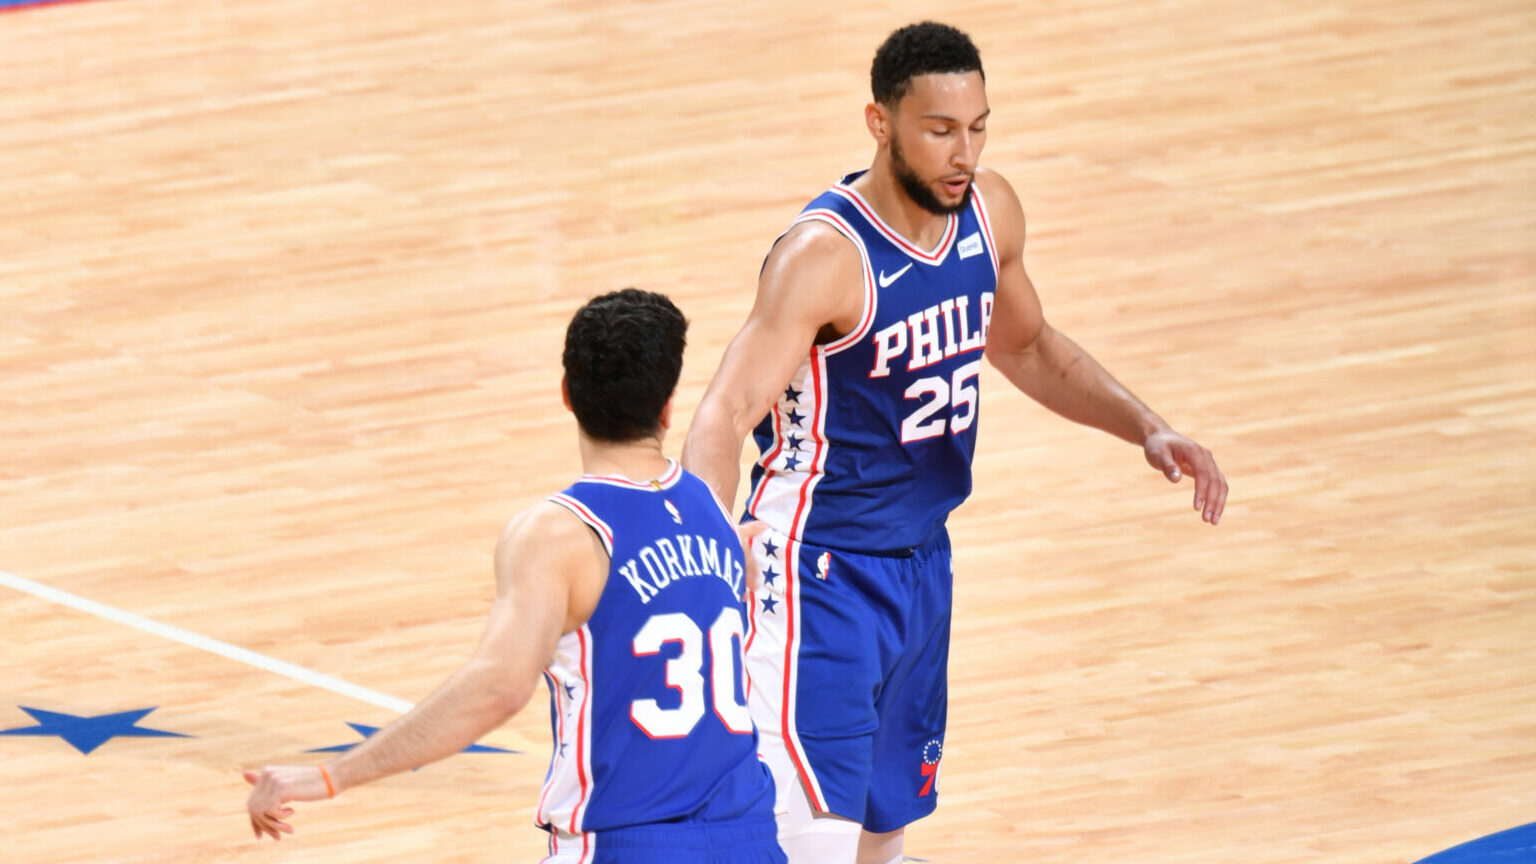 Sixers advance, but can they keep it up without Embiid?